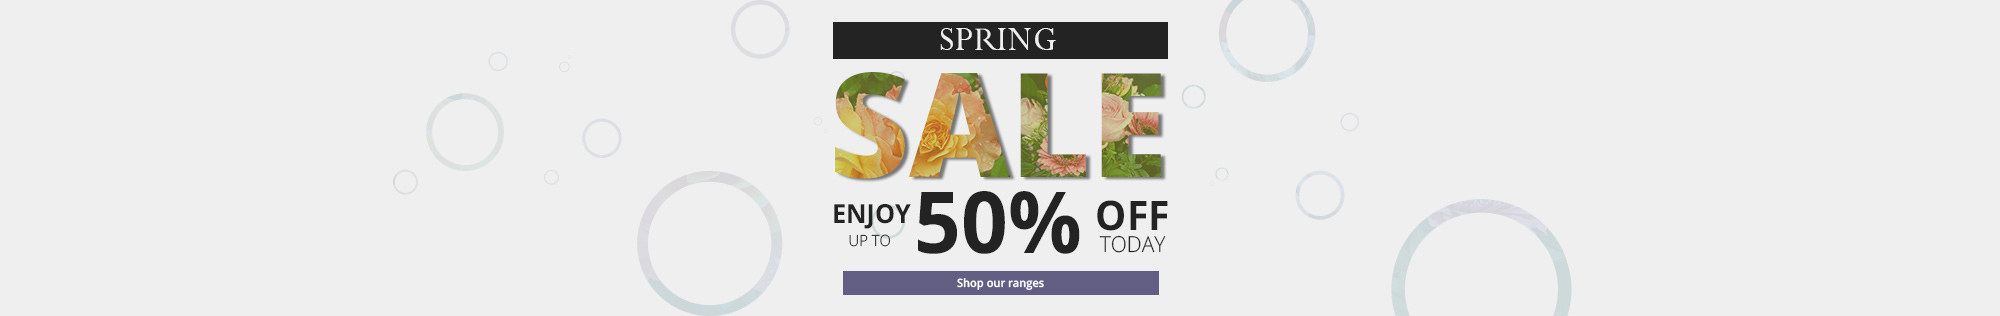 Sale - Enjoy up to 50% off ranges - Shop now